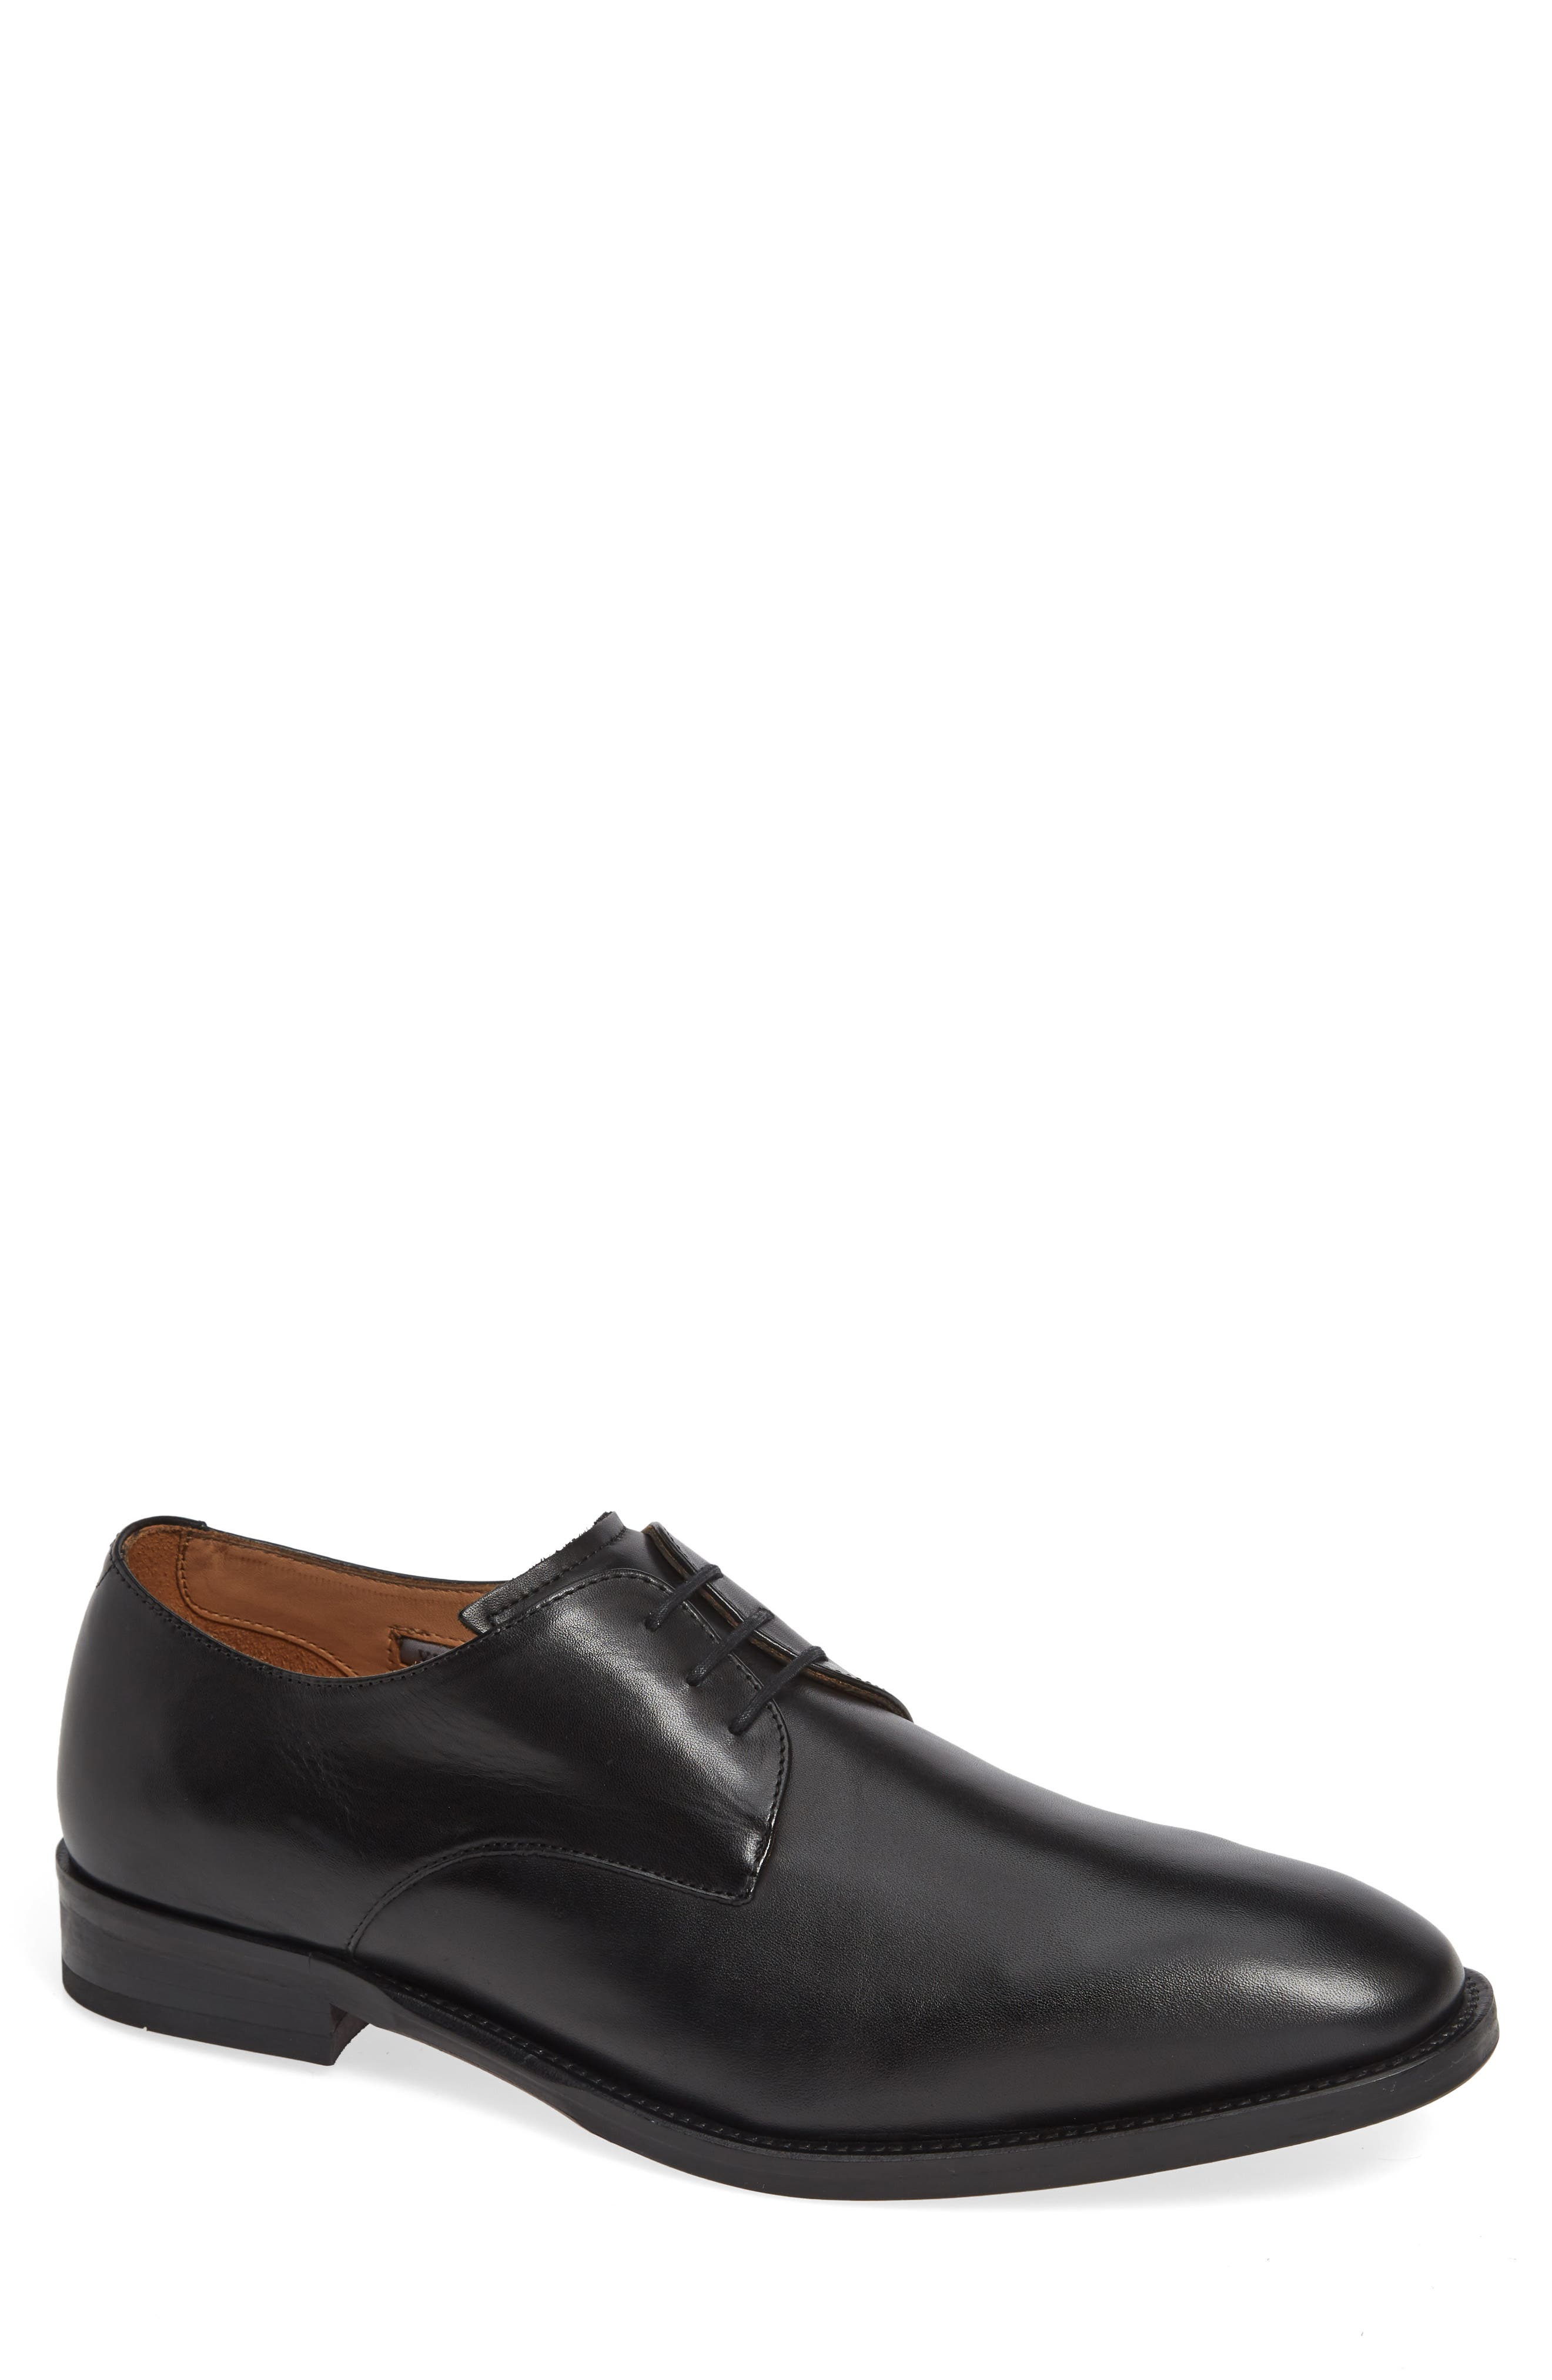 Hasper Plain Toe Derby,                             Main thumbnail 1, color,                             BLACK LEATHER